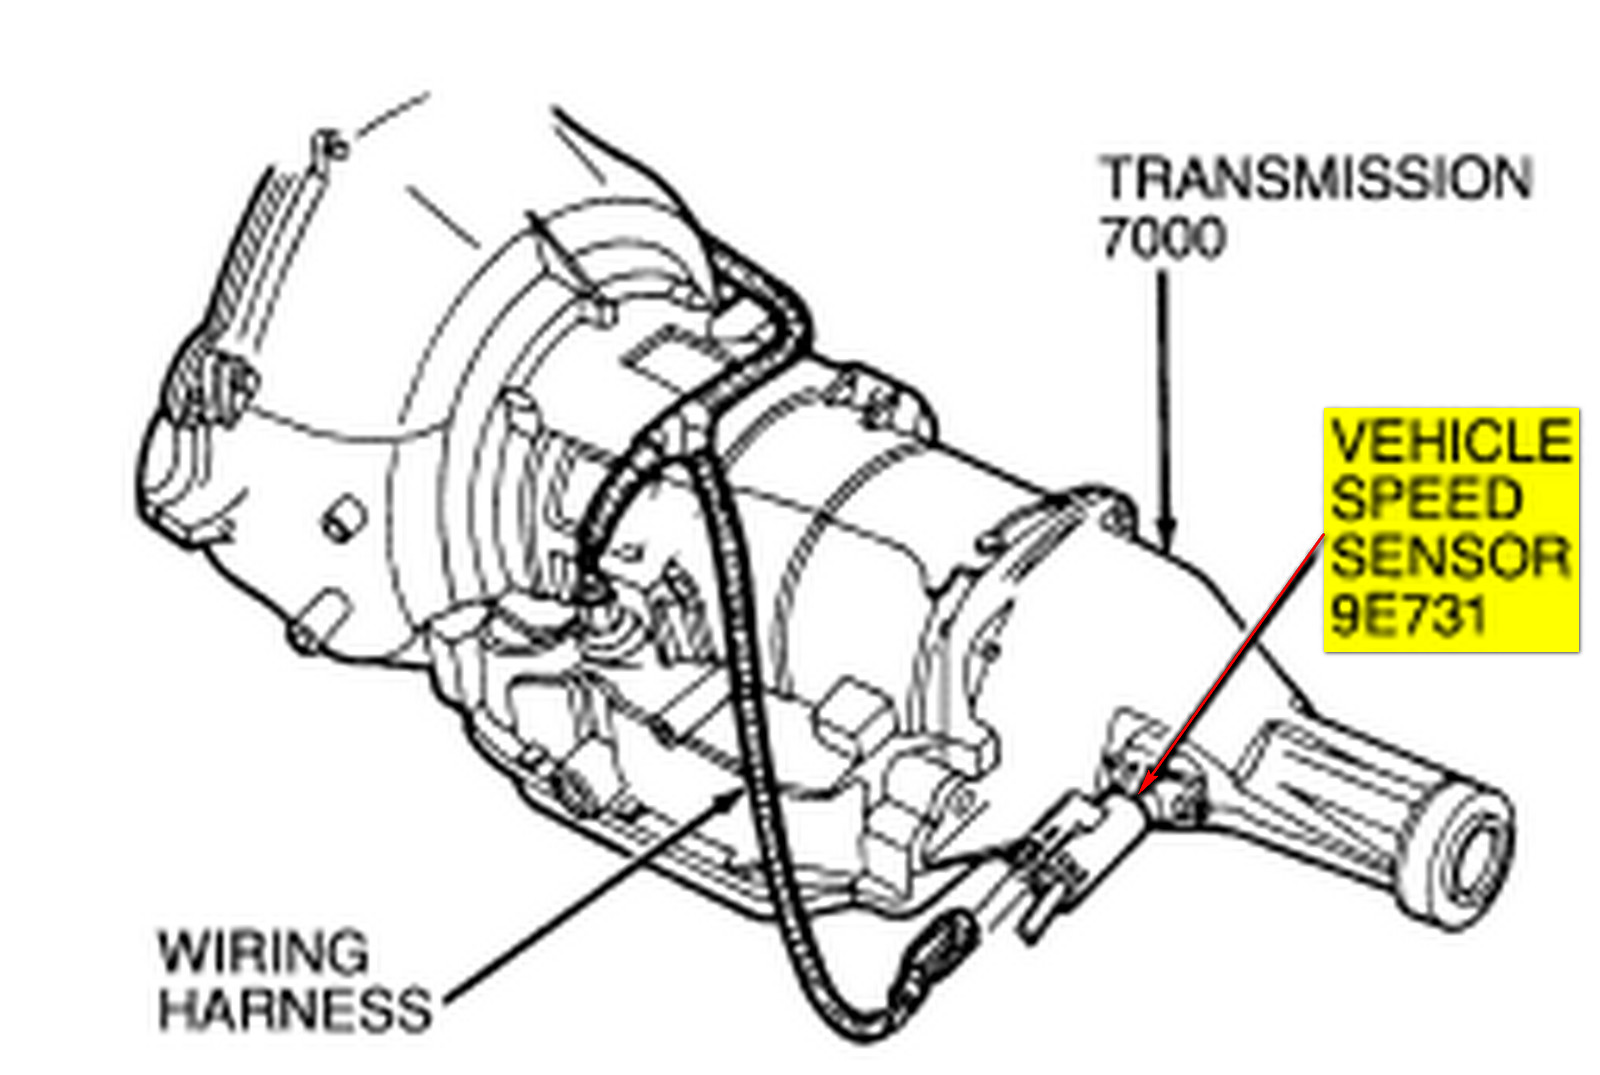 4l60e Vss Wiring Diagram 1990 Ford F150 Starter Relay Where Is The Variable Valve Timing Solenoid On A 6